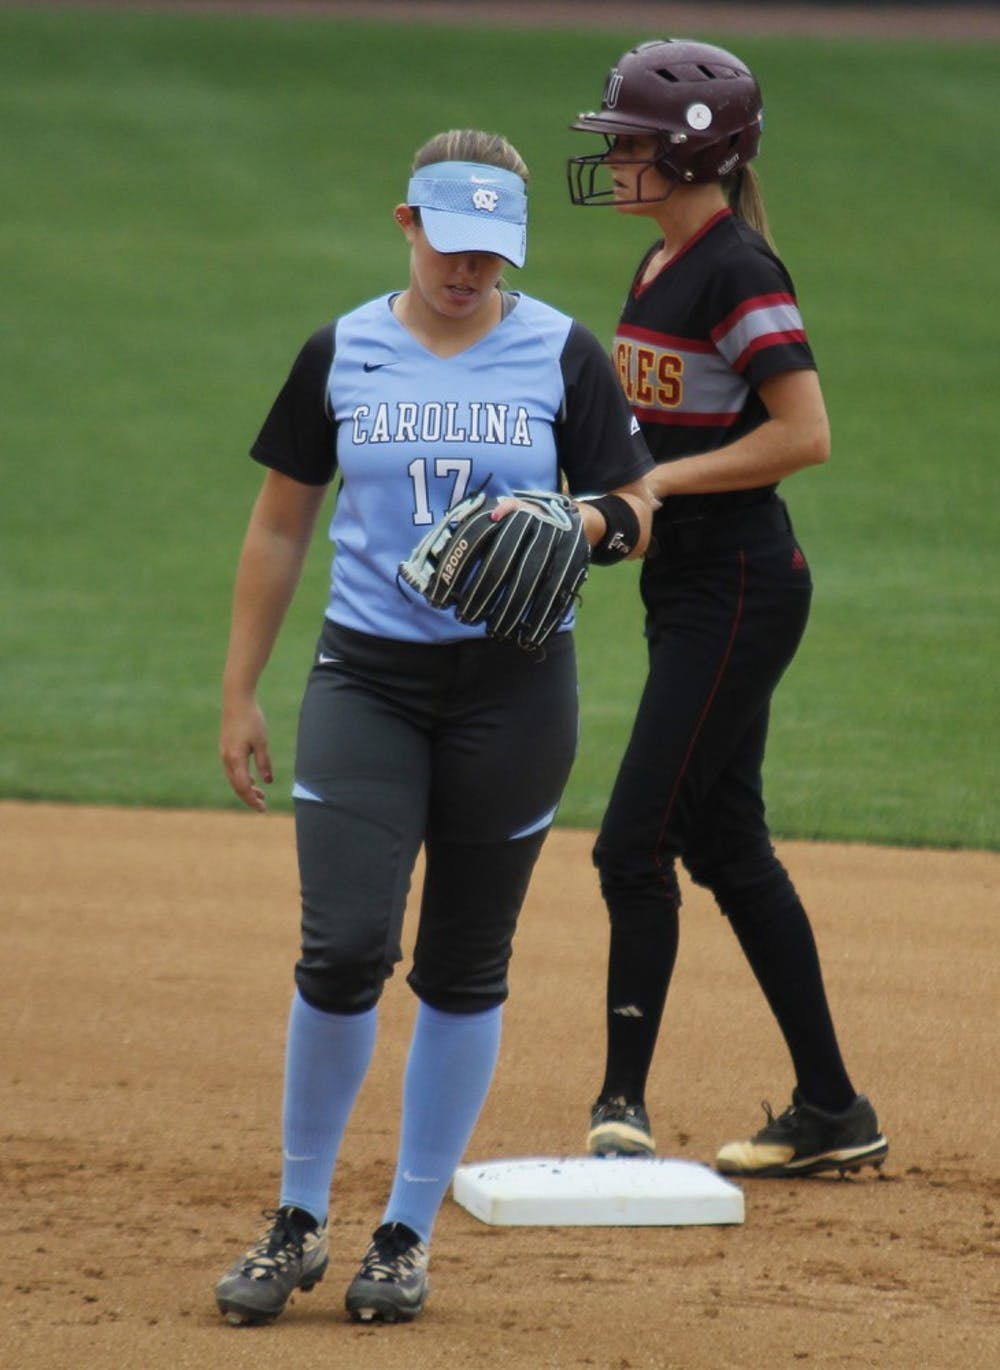 UNC softball's comeback attempt falls short against Winthrop